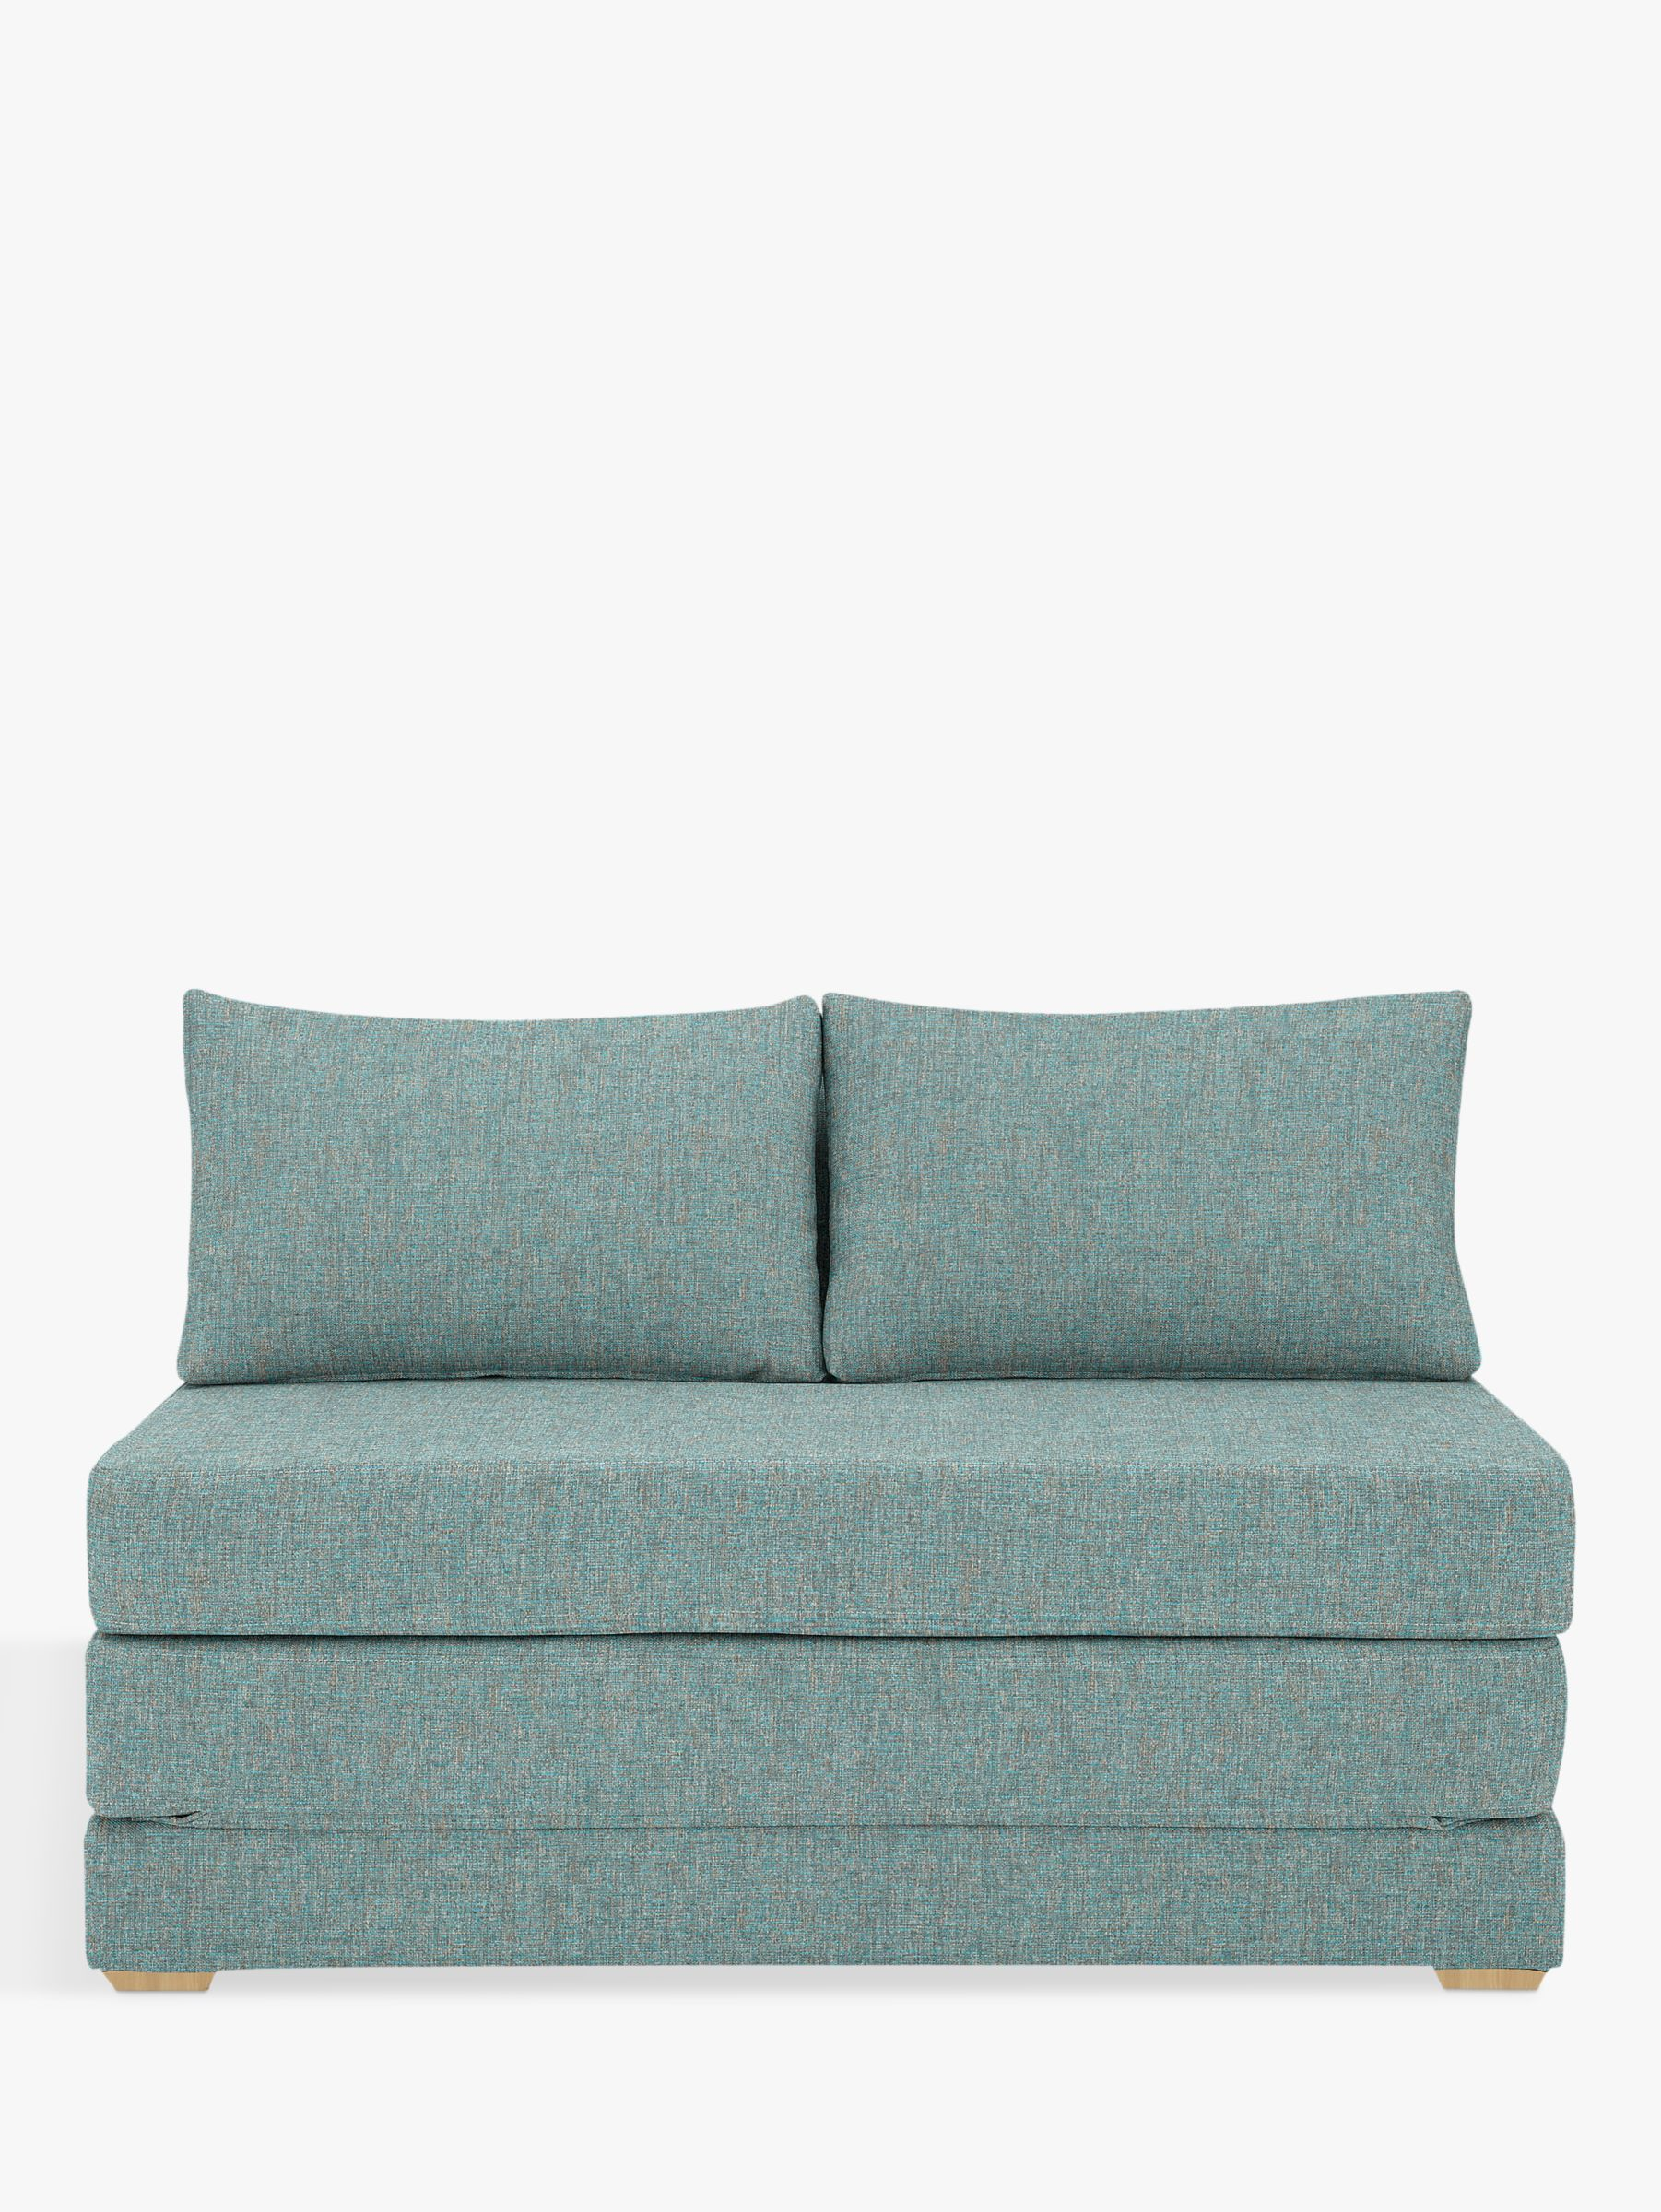 John Lewis Kip Small Double Sofa Bed